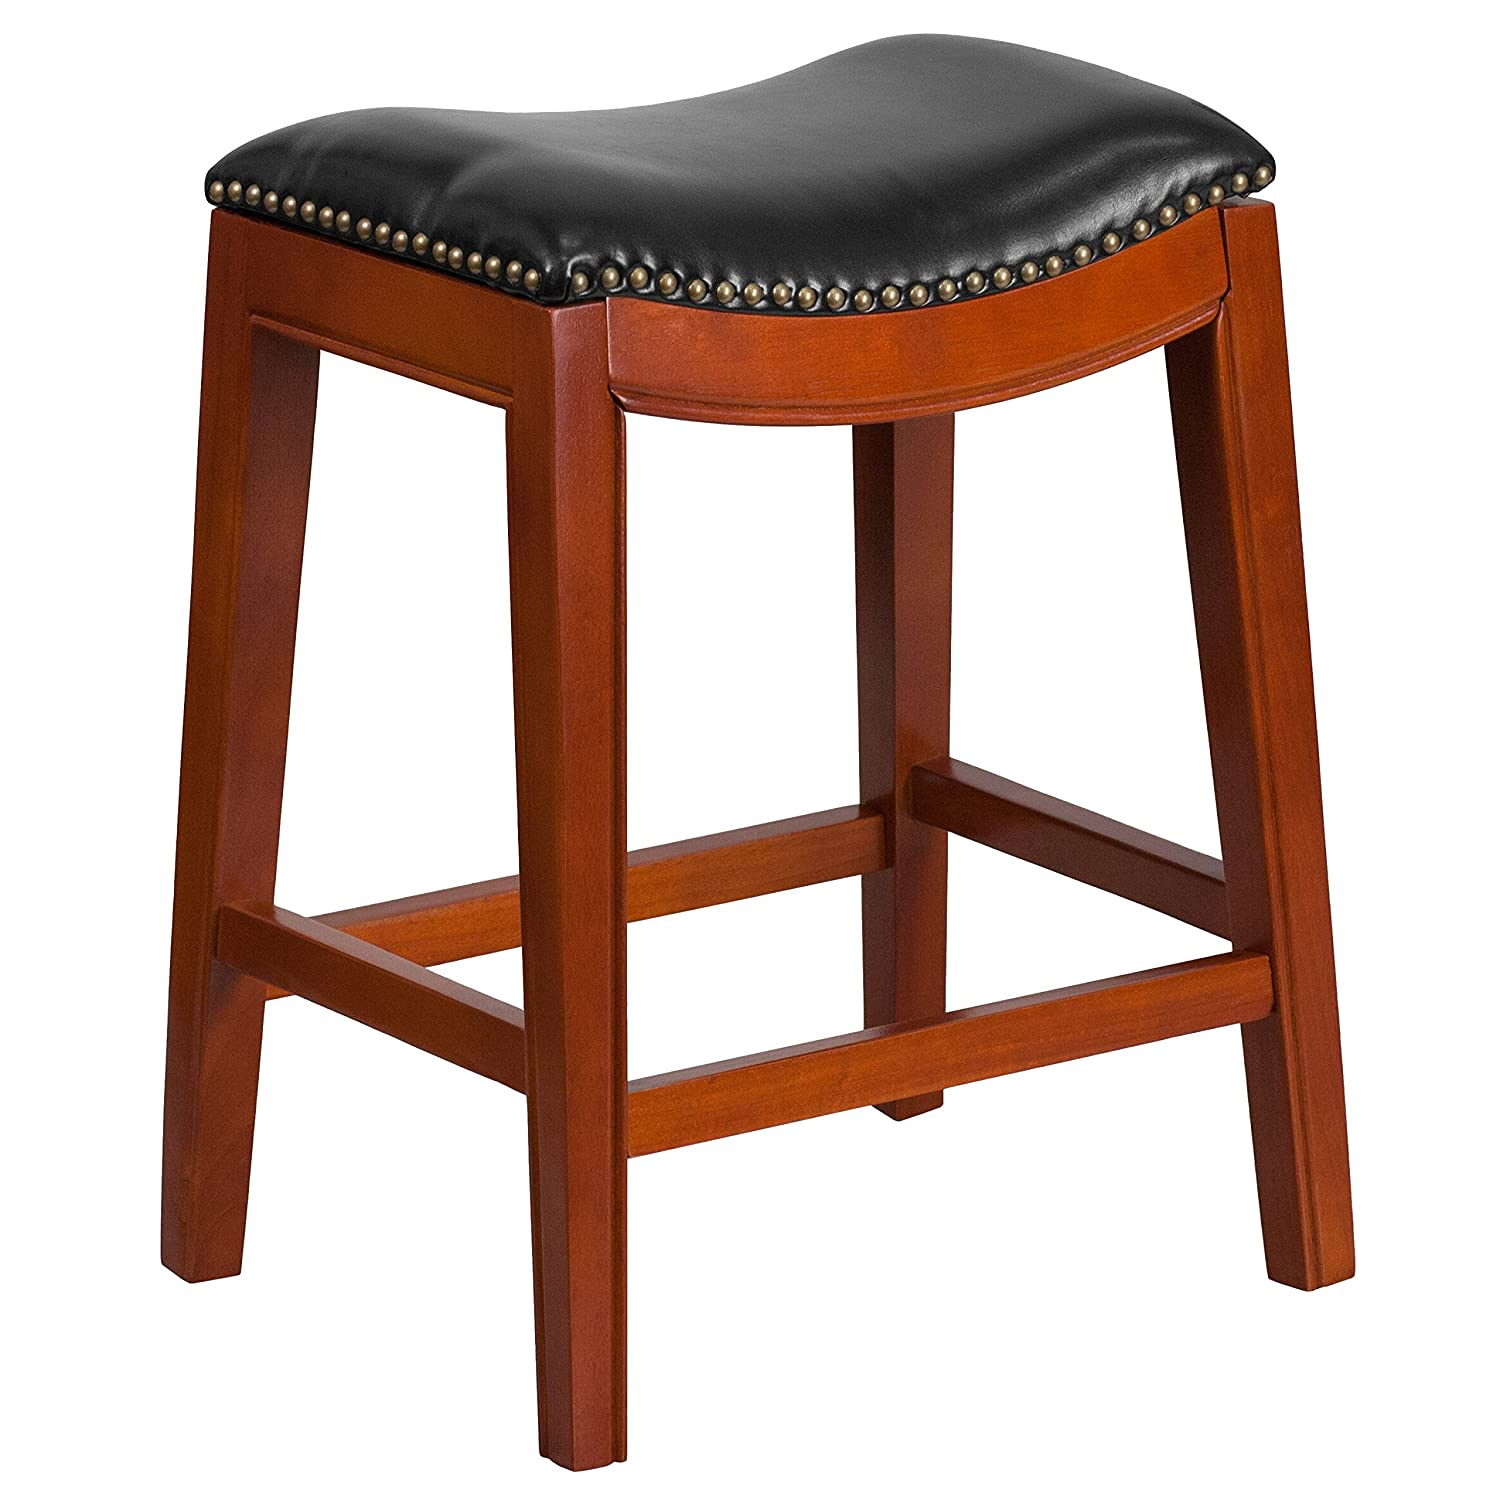 Fabulous Details About Flash Furniture 26 High Backless Light Cherry Wood Counter Height Stool Machost Co Dining Chair Design Ideas Machostcouk